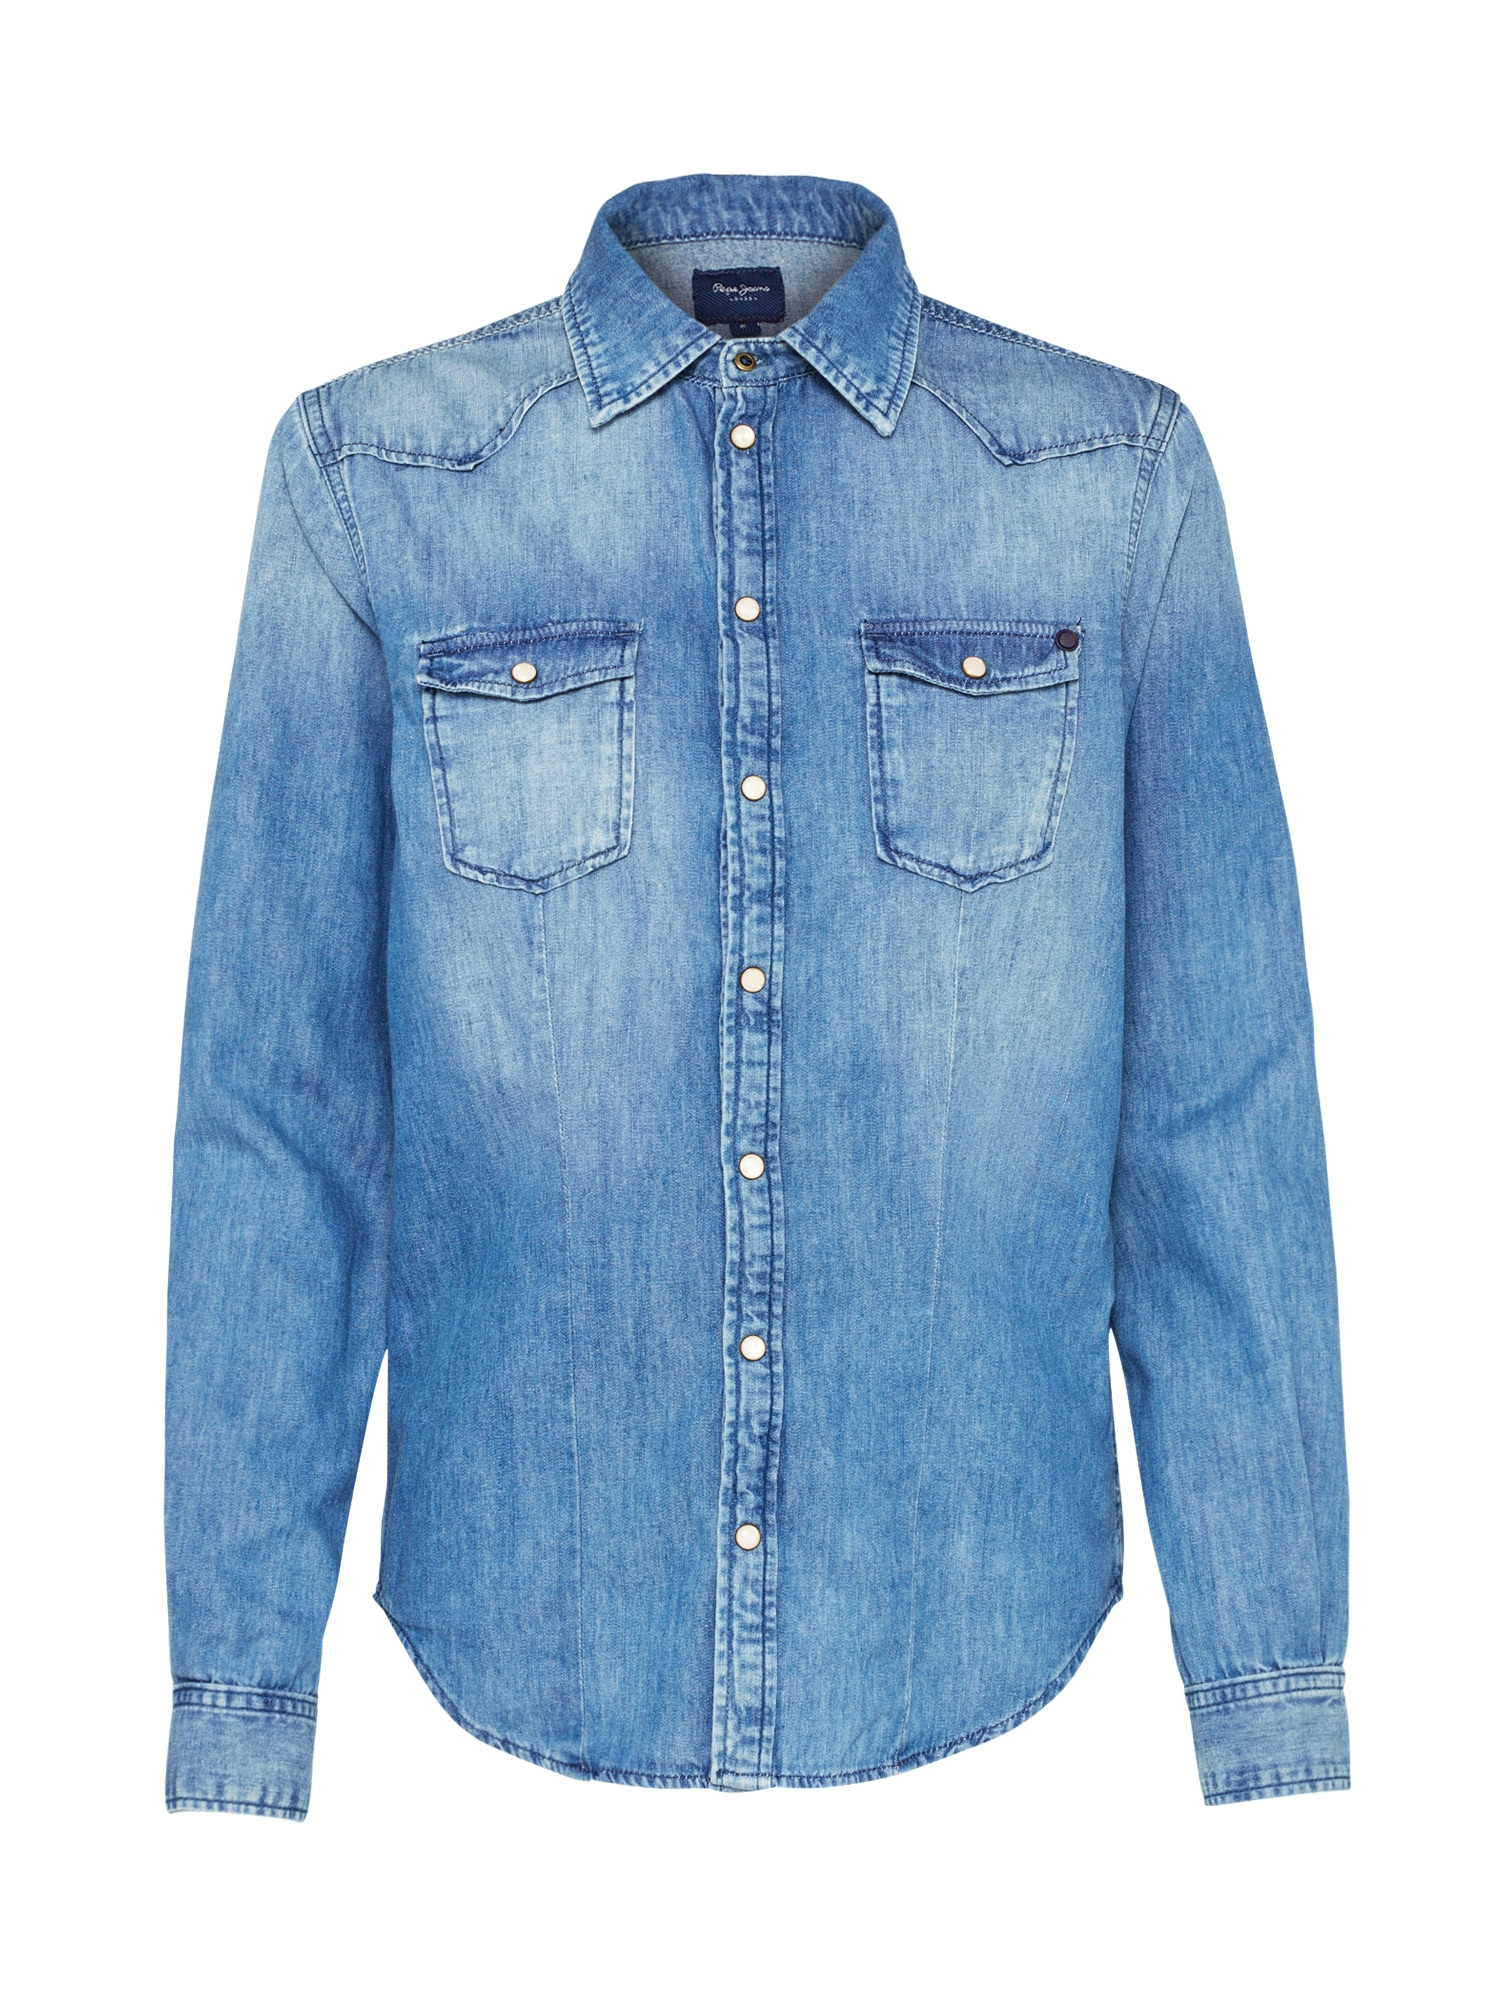 Pepe Jeans Dames Blouse ROSIE blauw